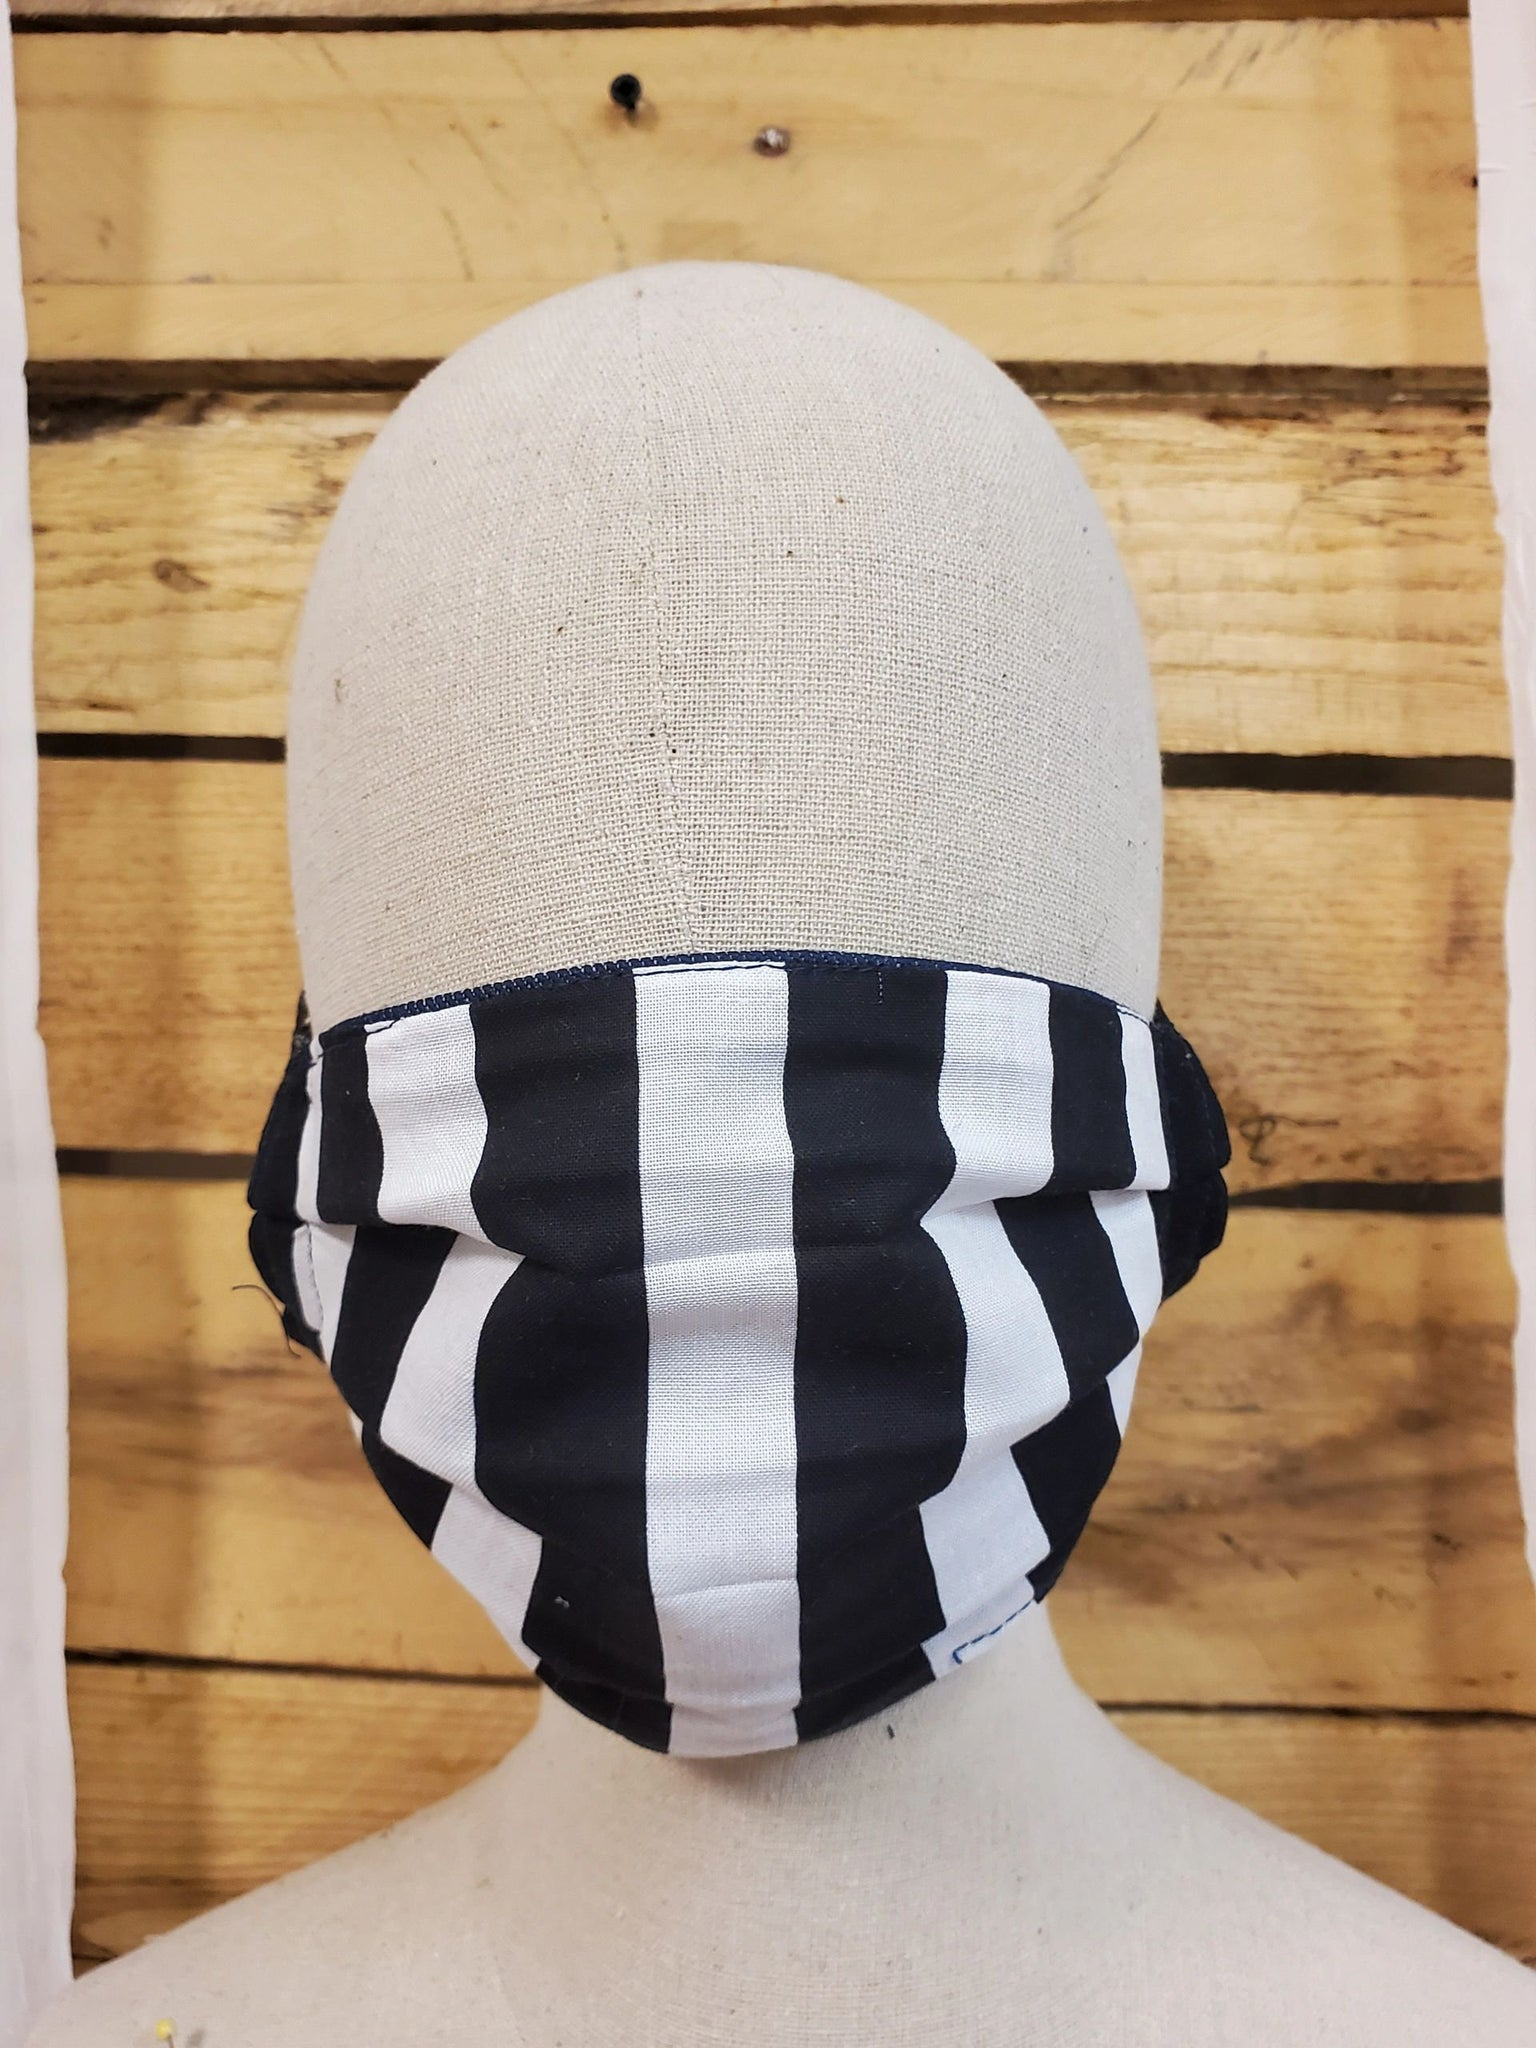 Striped adult mask with slot for filter